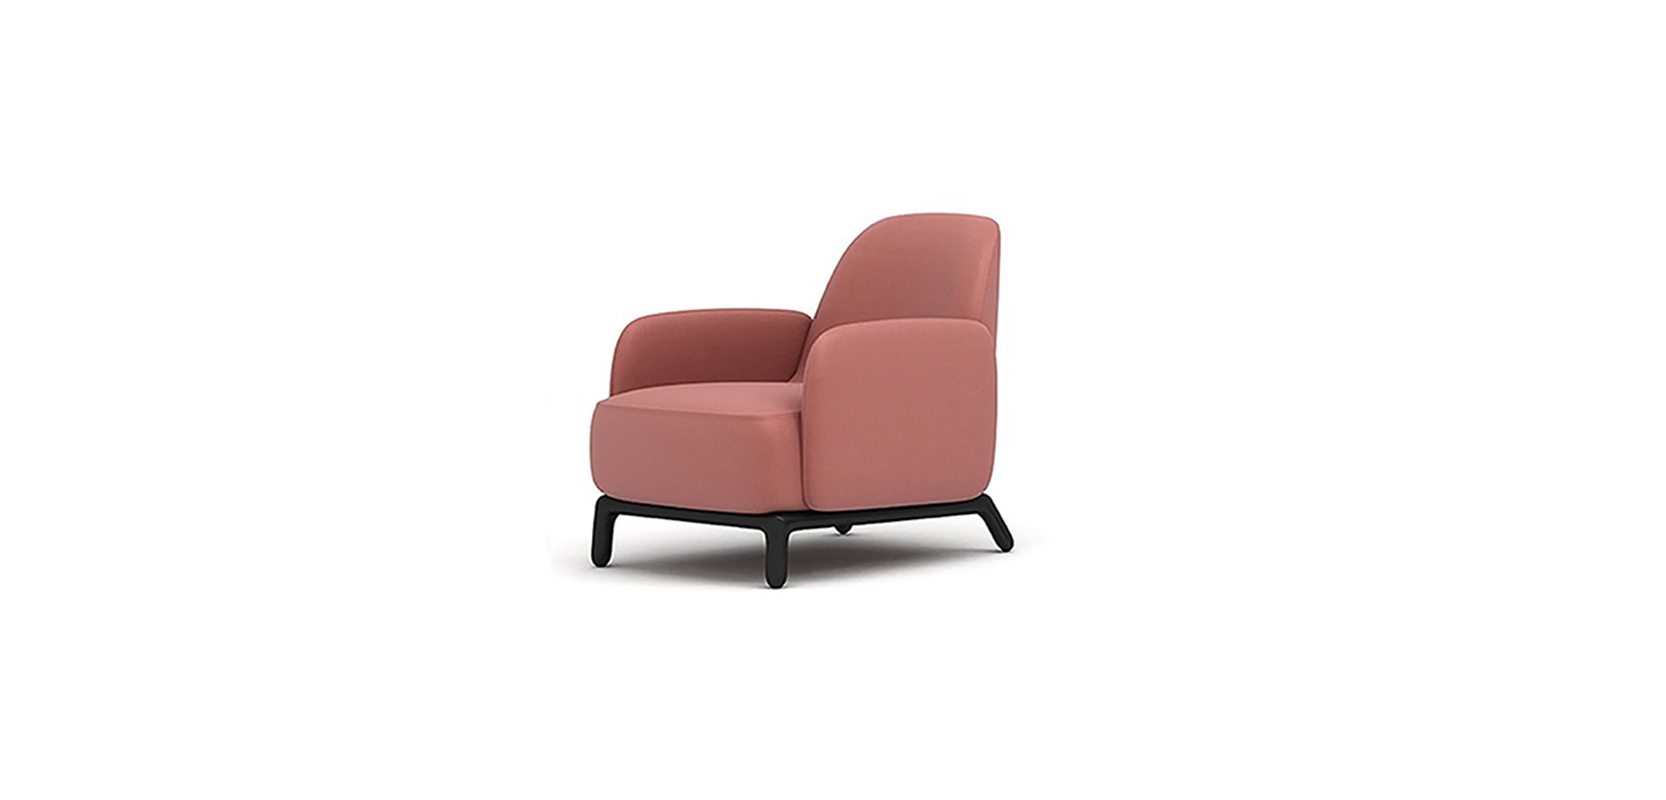 OASIS ARMCHAIR BRAND:  HC28  WEB:   www.hc28.com.cn  Oasis Armchair shows elegant retro style and delicate details through brightness color system. The main seat is embraced by the independent light armrests on the two sides and creates suitable sense of safety, it creates a balance of relaxation and vitality.